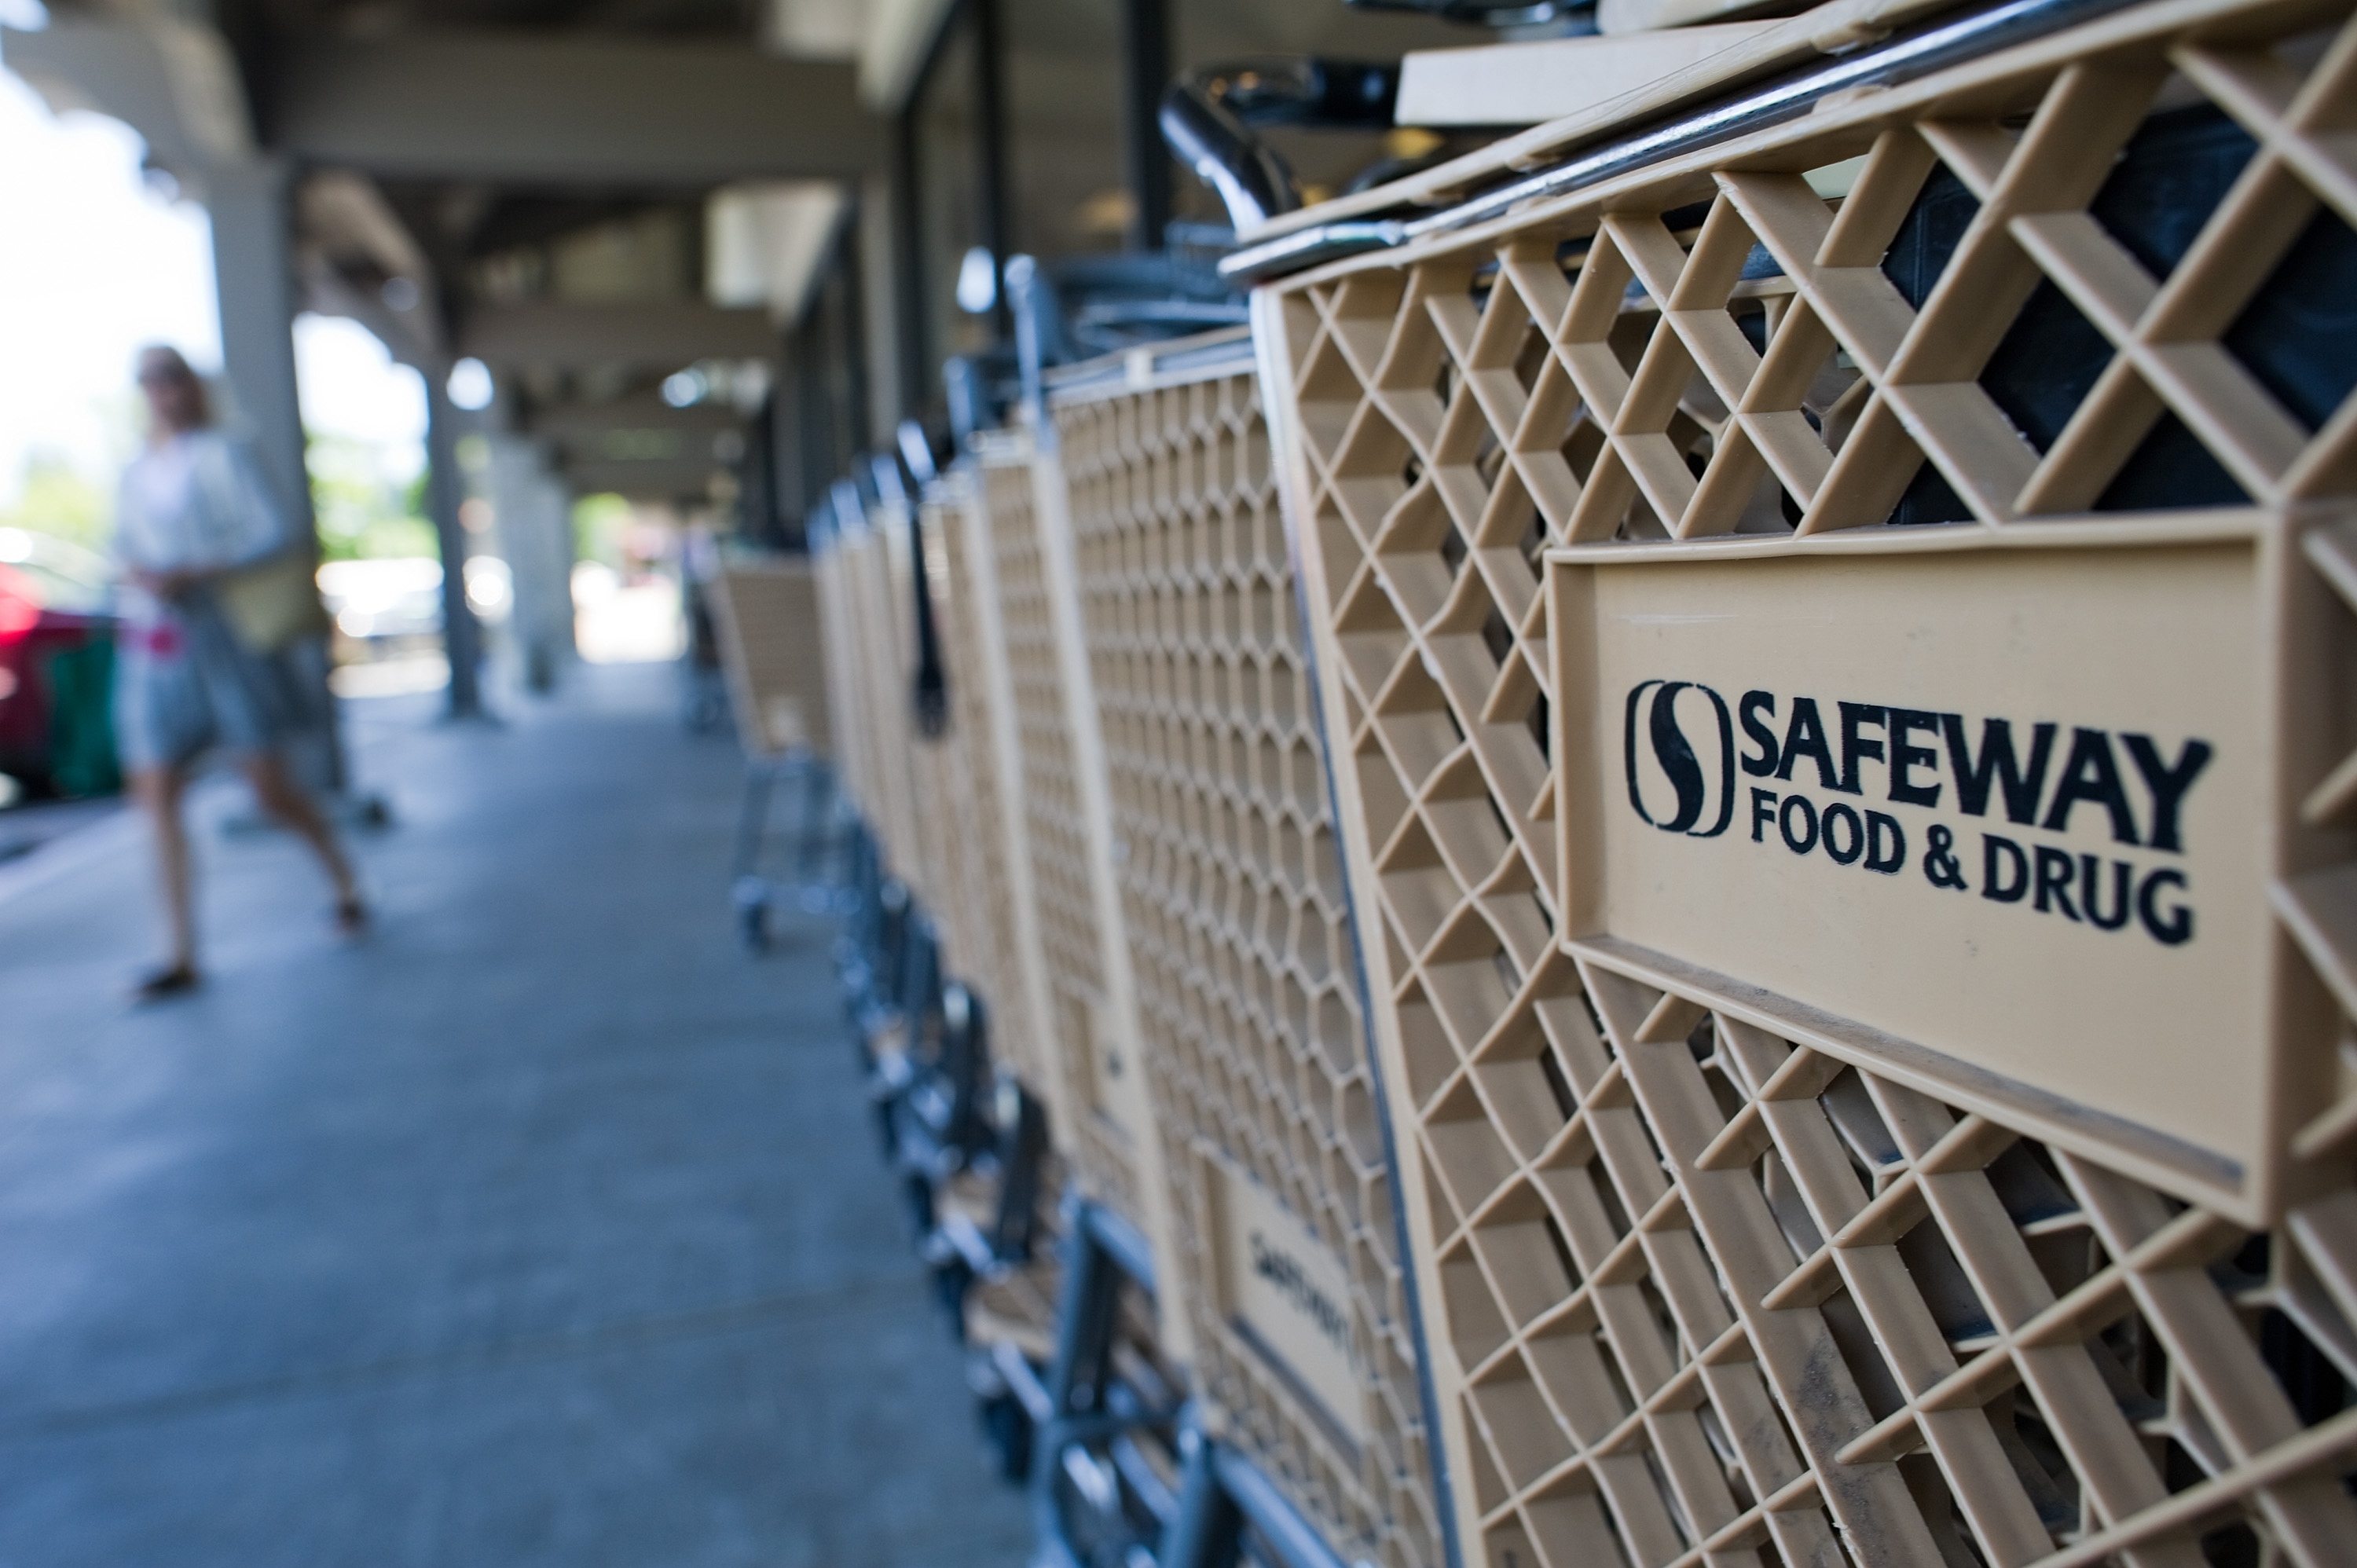 The Safeway Inc. logo is displayed on shopping carts outside of a Safeway store in Alamo, California.